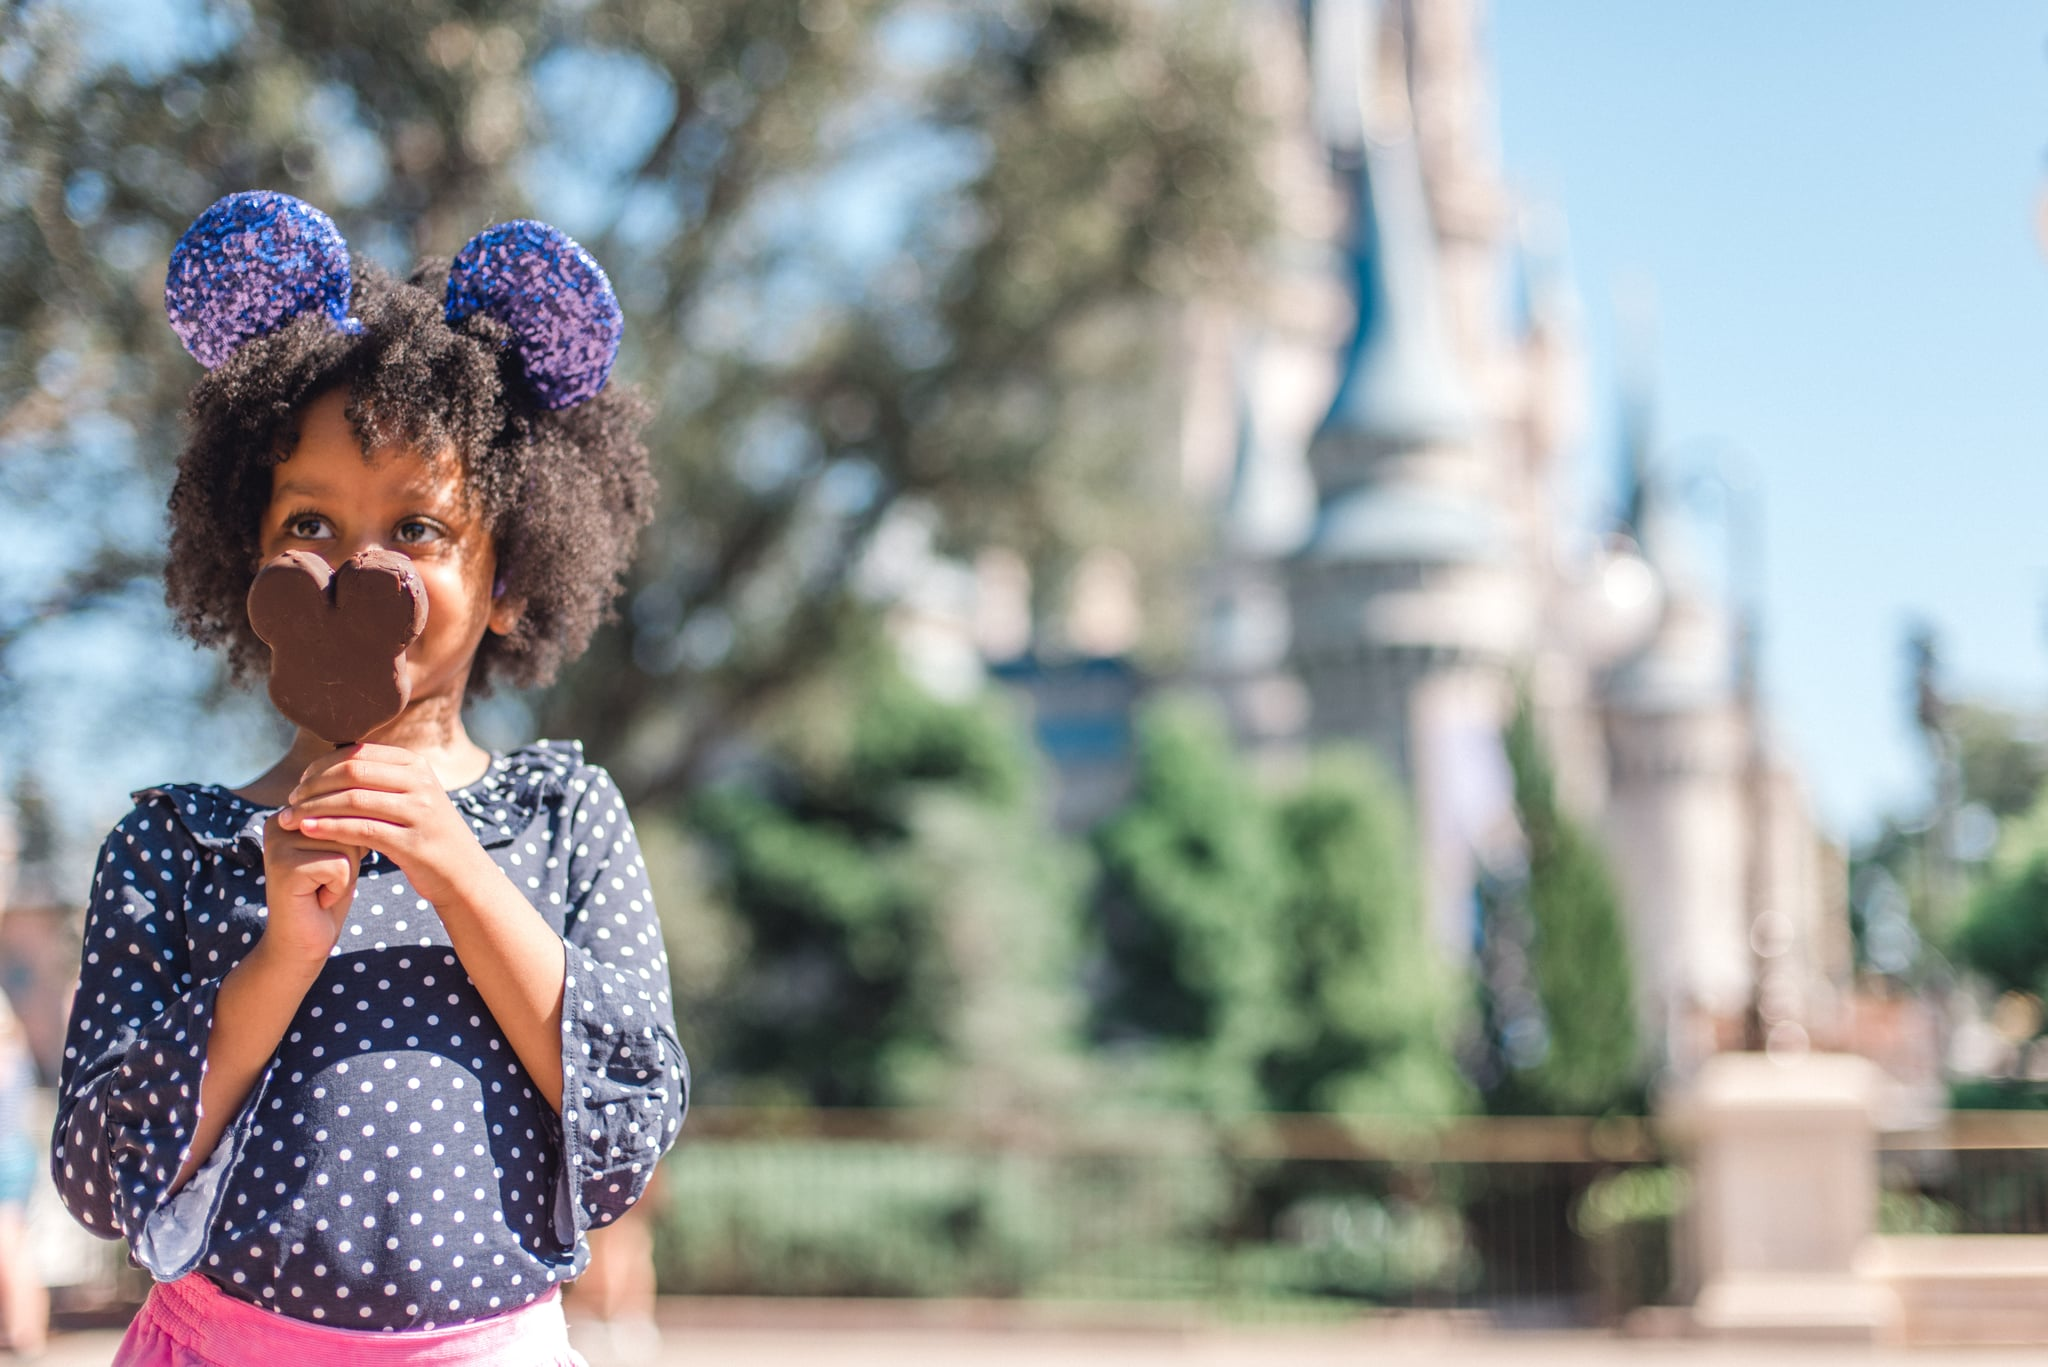 The magic is real for little ones as they visit Magic Kingdom Park for the very first time. From that first glimpse of Cinderella Castle to hugs with favorite Disney characters to exploring attractions and sampling Mickey Mouse-shaped treats, visiting Walt Disney World Resort in Lake Buena Vista, Fla., is a vacation of choice for young families. (Claire Celeste, photographer)